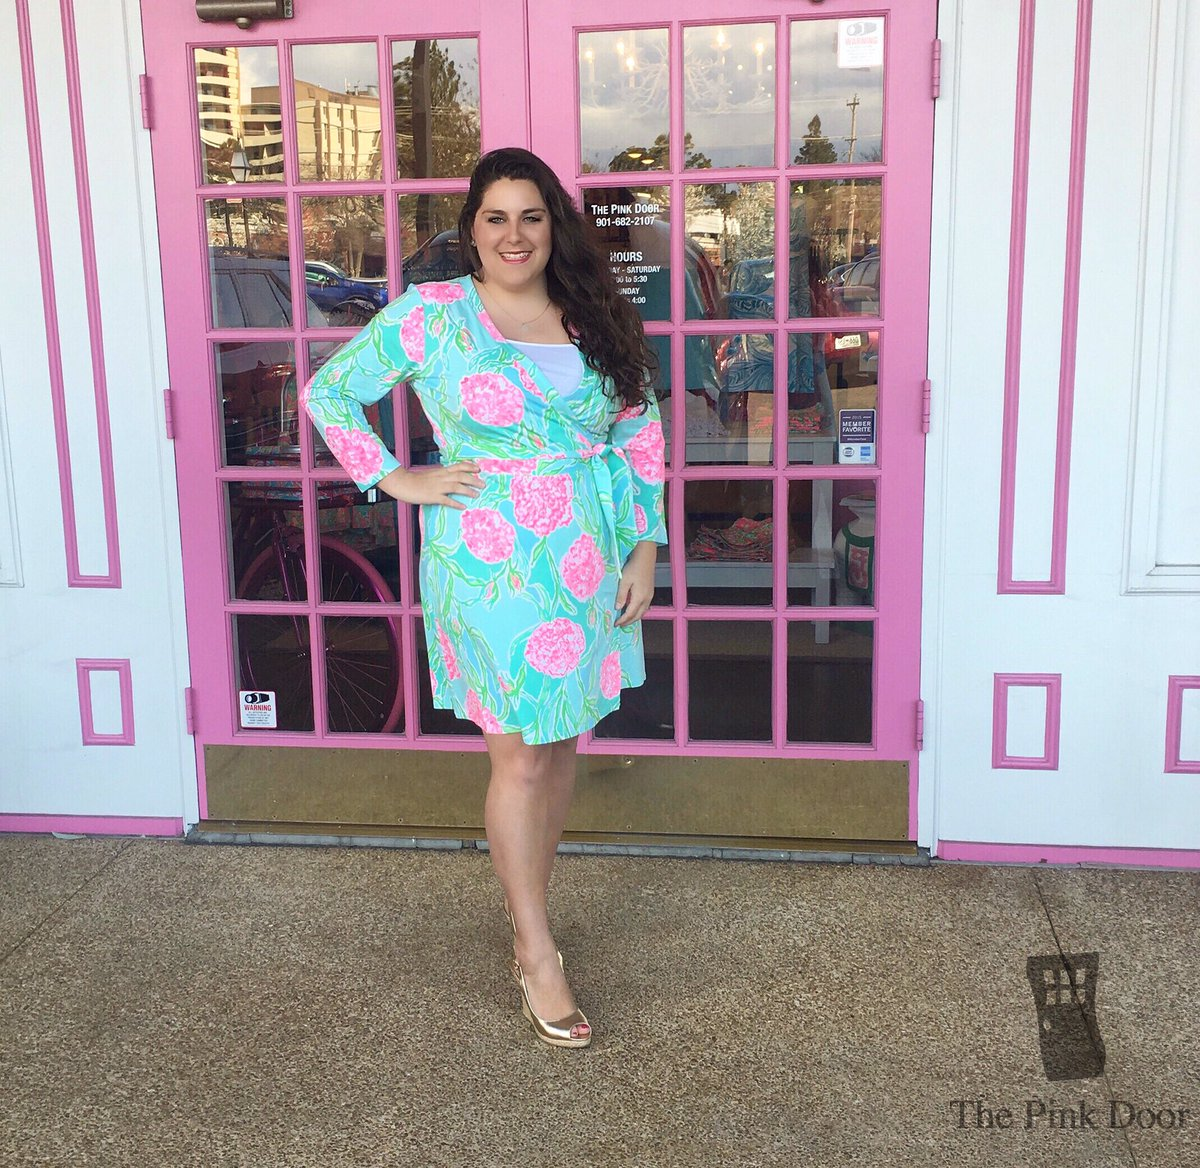 aa74d834e5547a A Lilly wrap dress? YES PLEASE. The Meridan Wrap dress is perfect for  traveling, dinner or Easter! #LillyPulitzerpic.twitter.com/TiKP983rL6